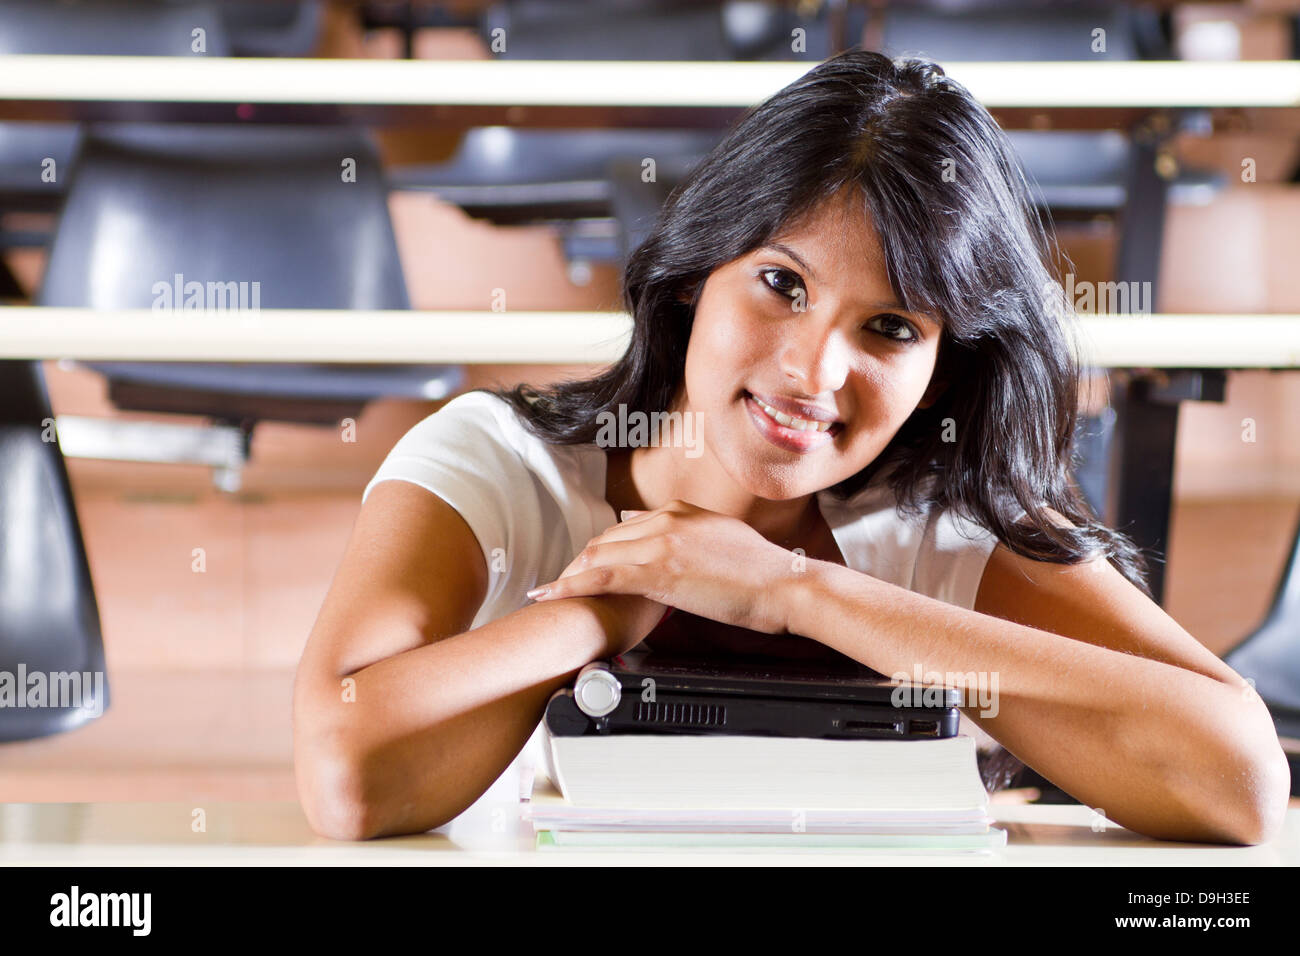 Female college student in university lecture room - Stock Image